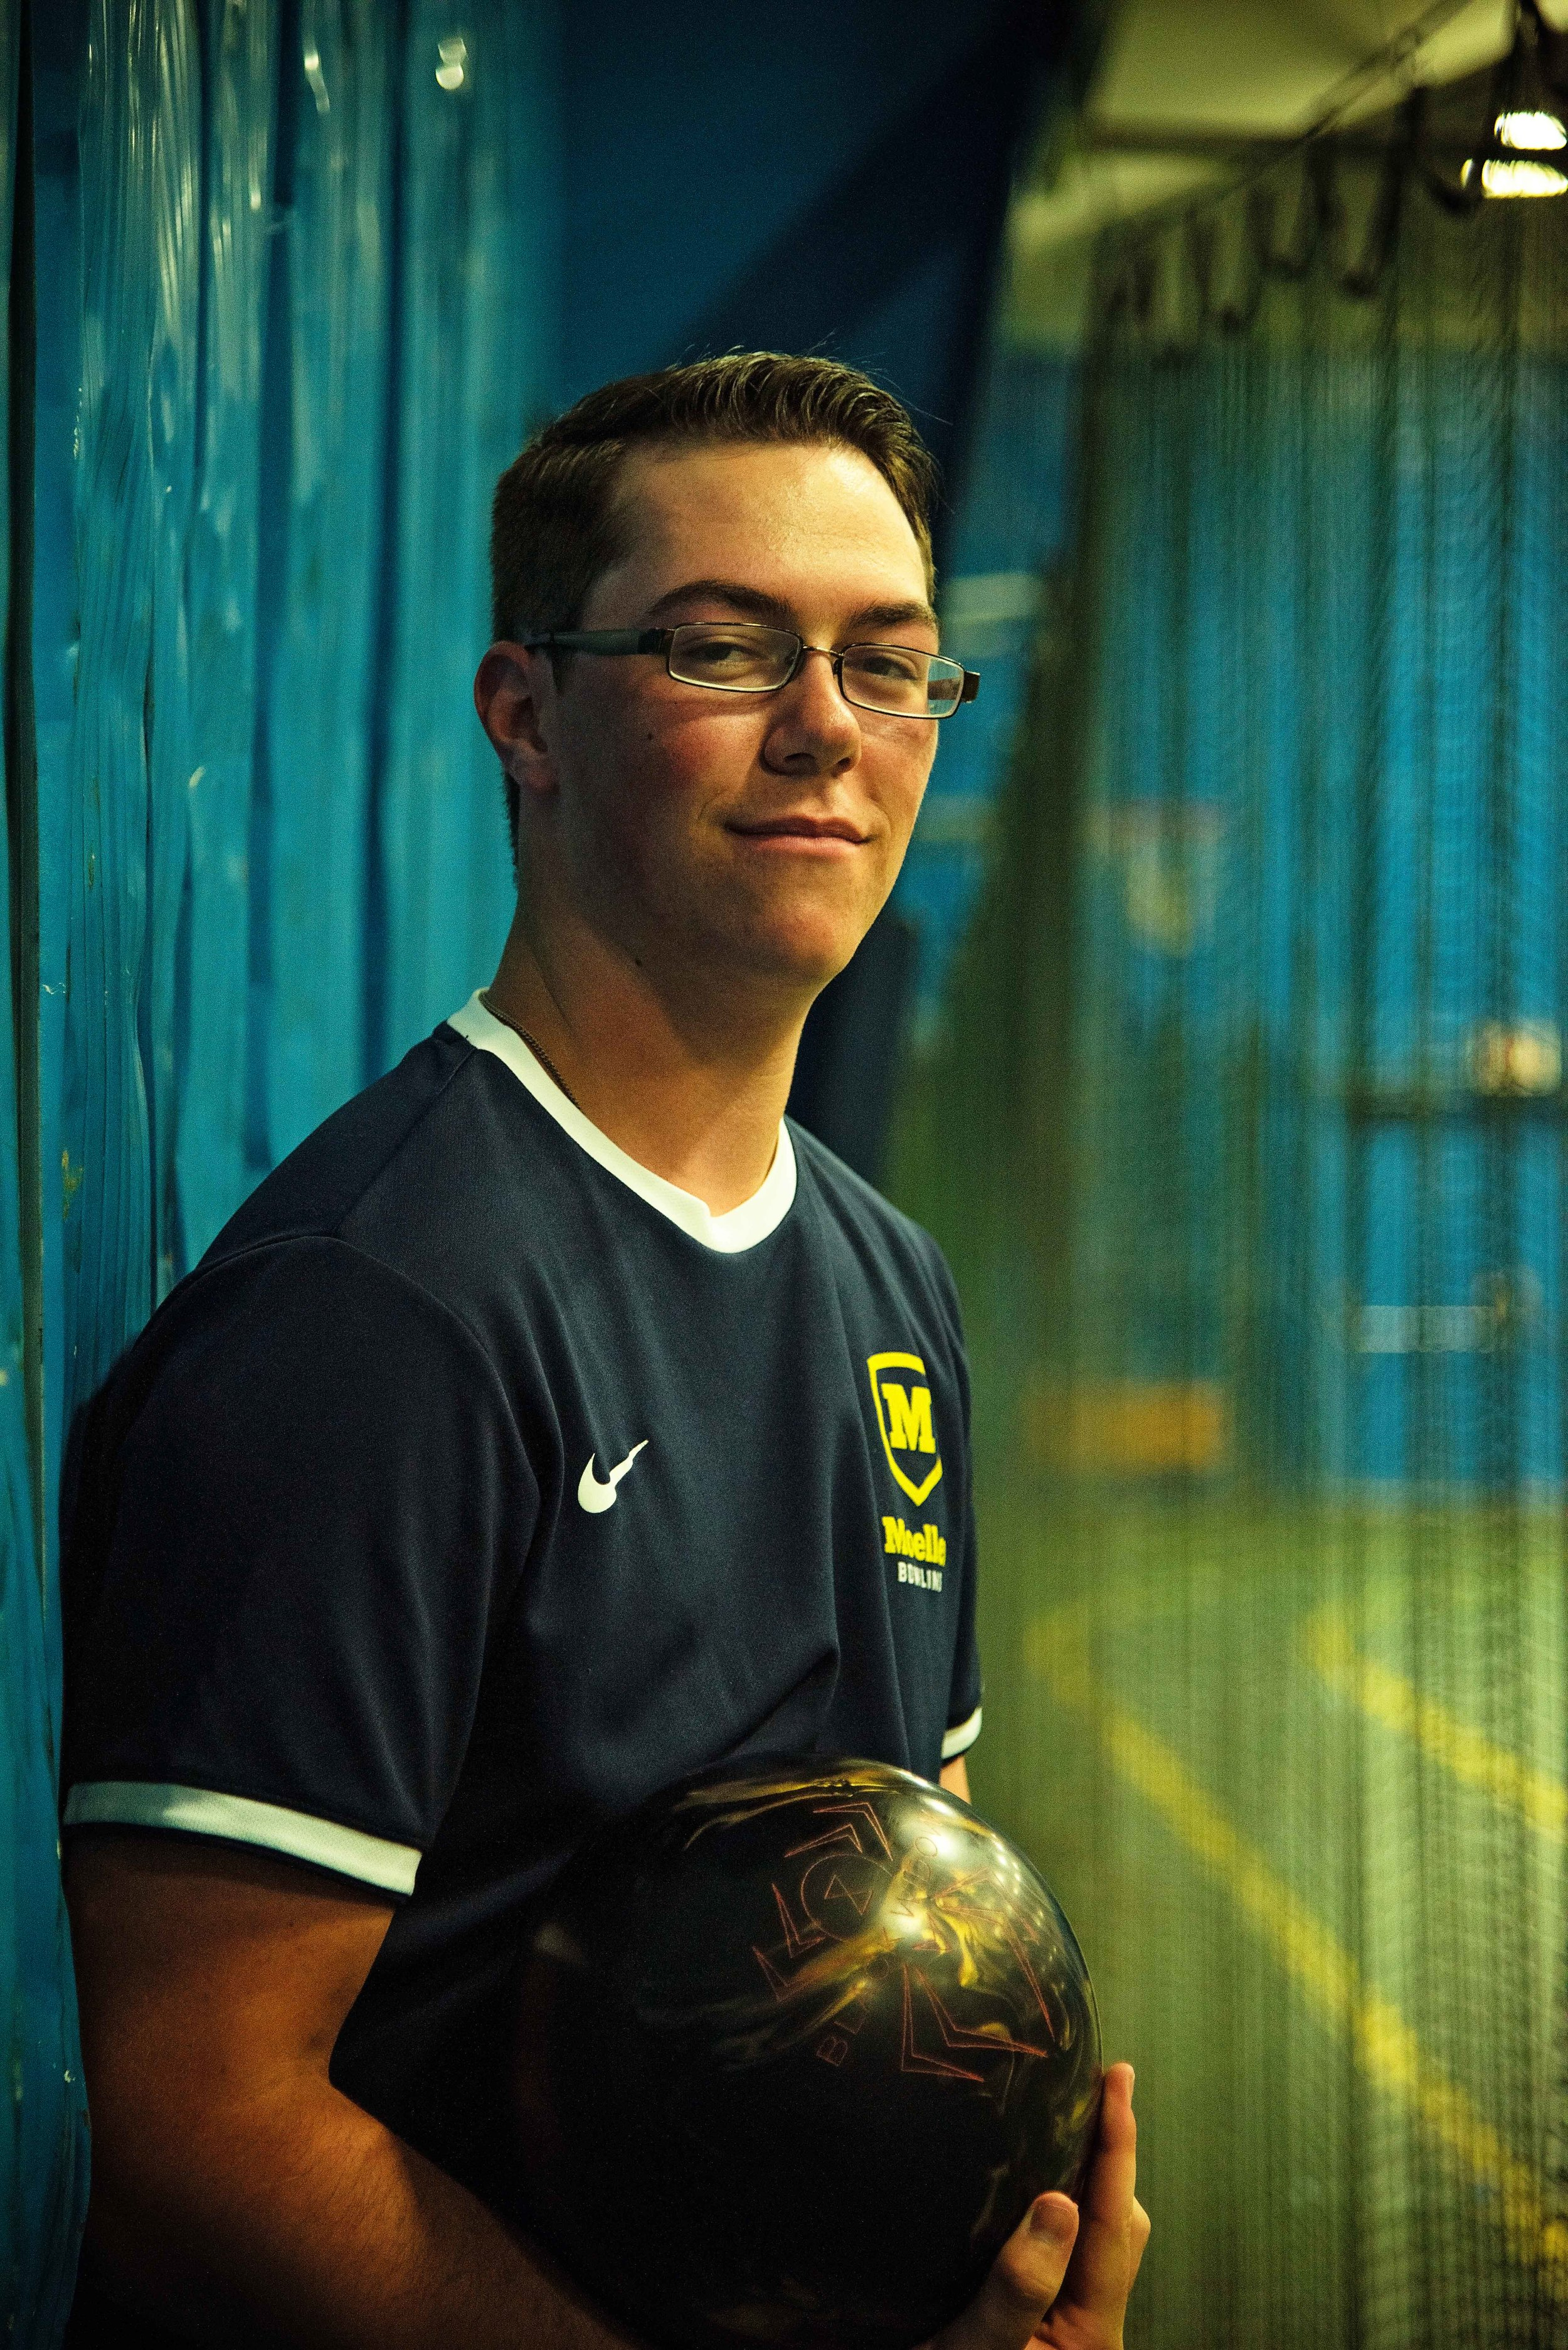 Kyle Smith holding Bowling Ball Moeller High School Bowling Class of 2020 Remember When Portraits